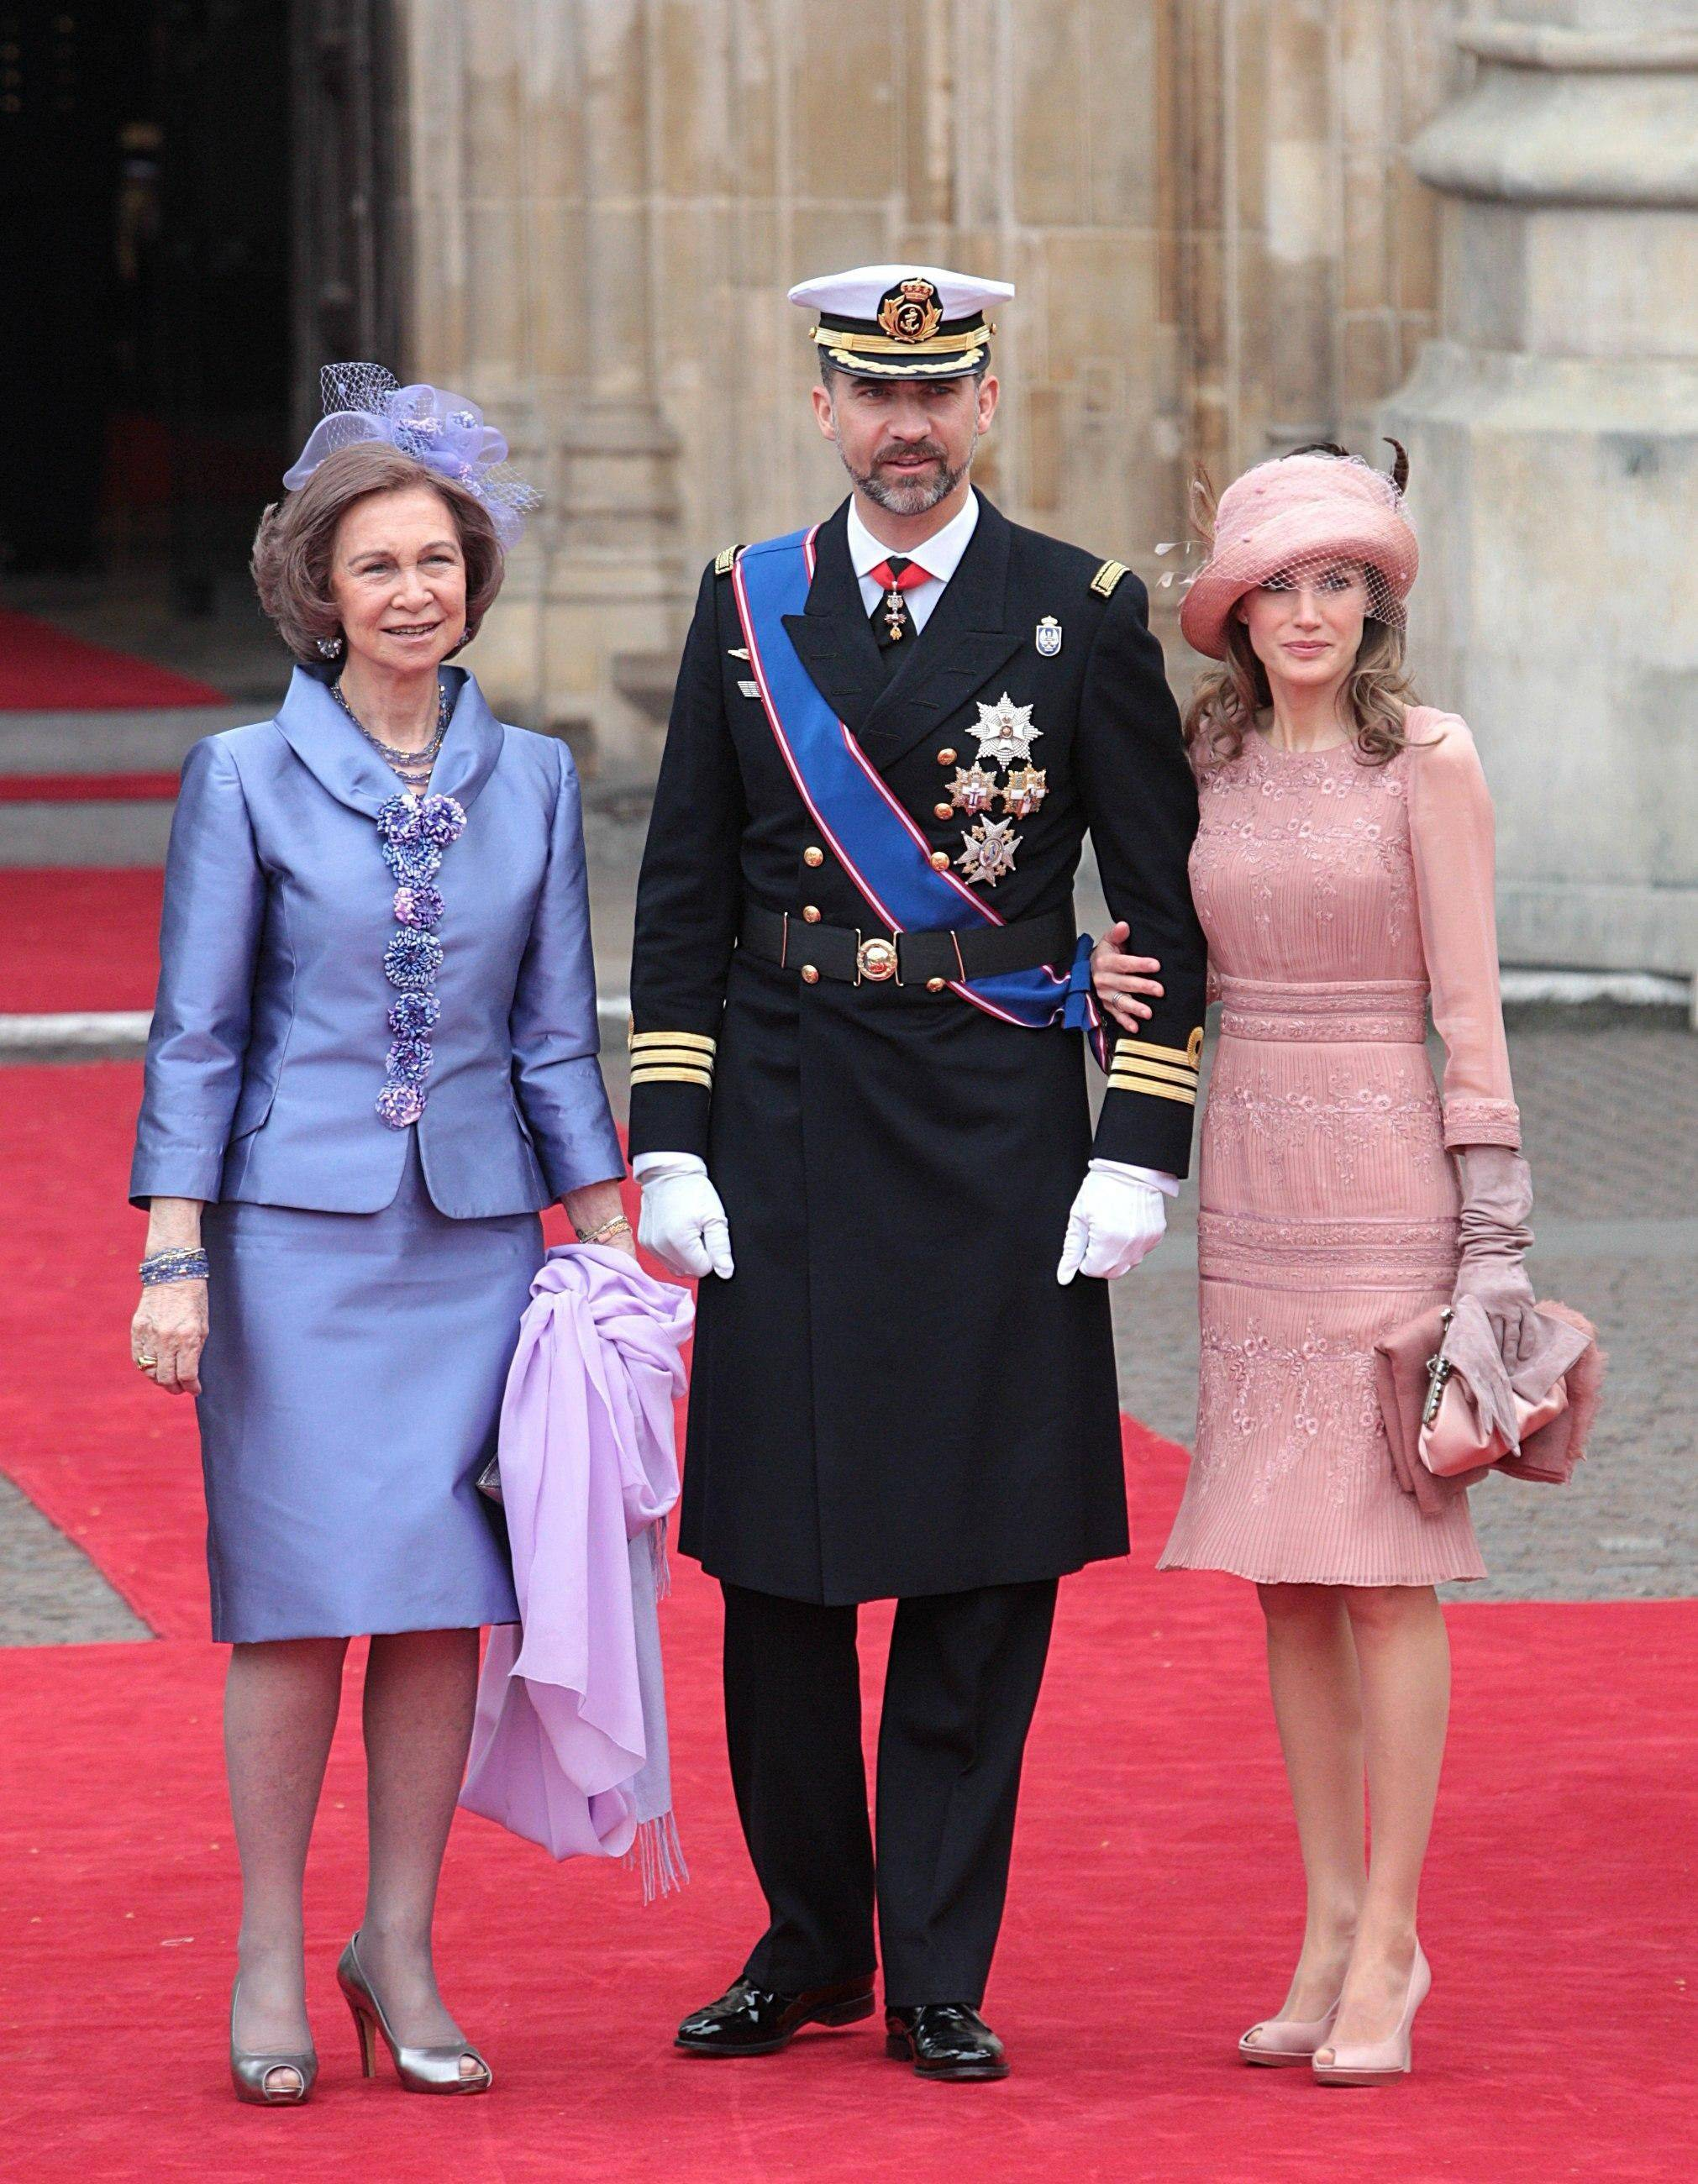 Spain's Prince Felipe is flanked by Princess Letizia, right, and Spain's Queen Sofia arrive at Westminster Abbey in London where Britain's Prince William and Kate Middleton will marry, Friday April 29, 2011.